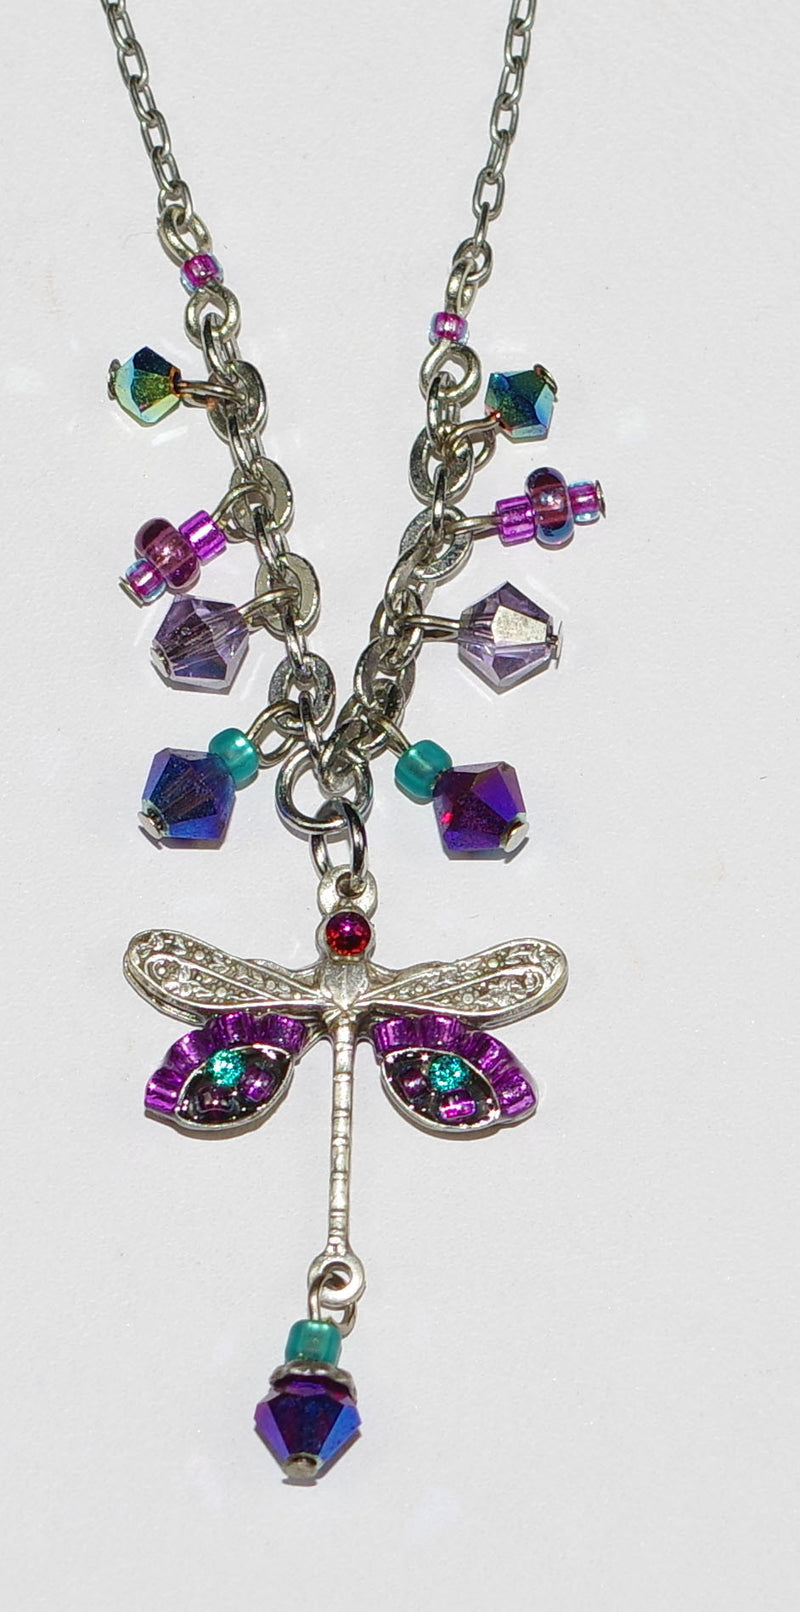 "FIREFLY NECKLACE SMALL DRAGONFLY PUR: blue, purple stones in 1"" pendant, silver 18"" adjustable chain"